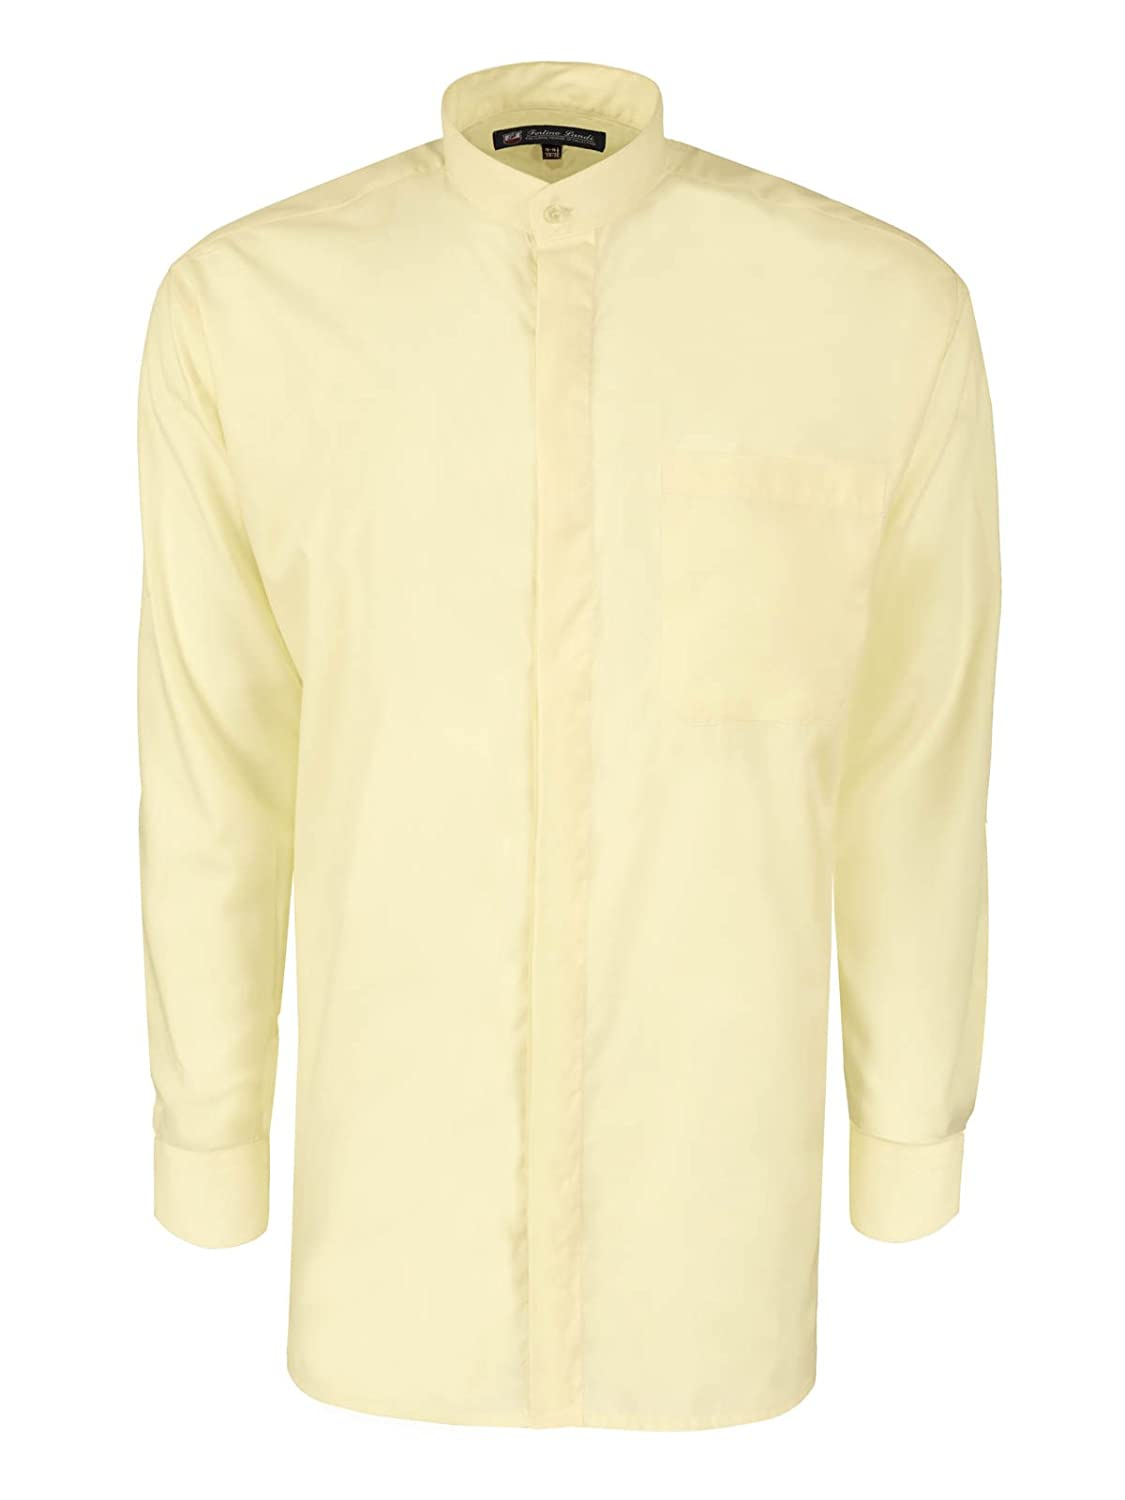 1920s Style Mens Shirts  Long-sleeve Banded Collar Shirt - Many Colors Available $18.99 AT vintagedancer.com